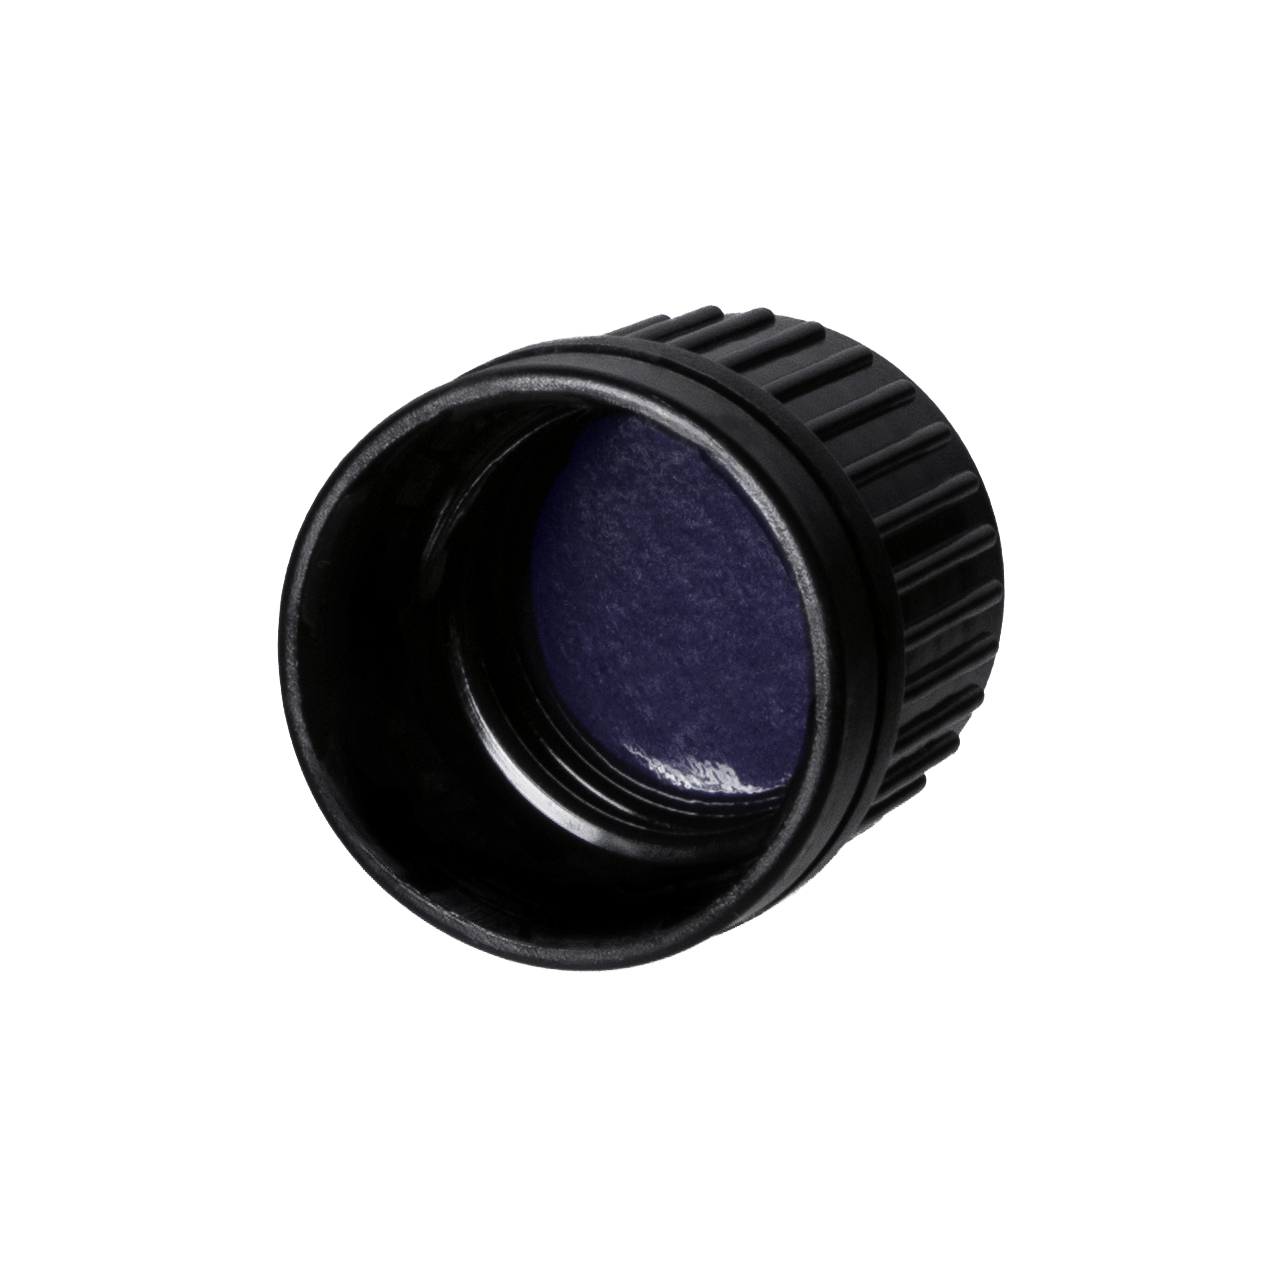 Tamper-evident closure DIN18, series II, PP, black, ribbed with violet Phan inlay (for Orion 5-100 ml)